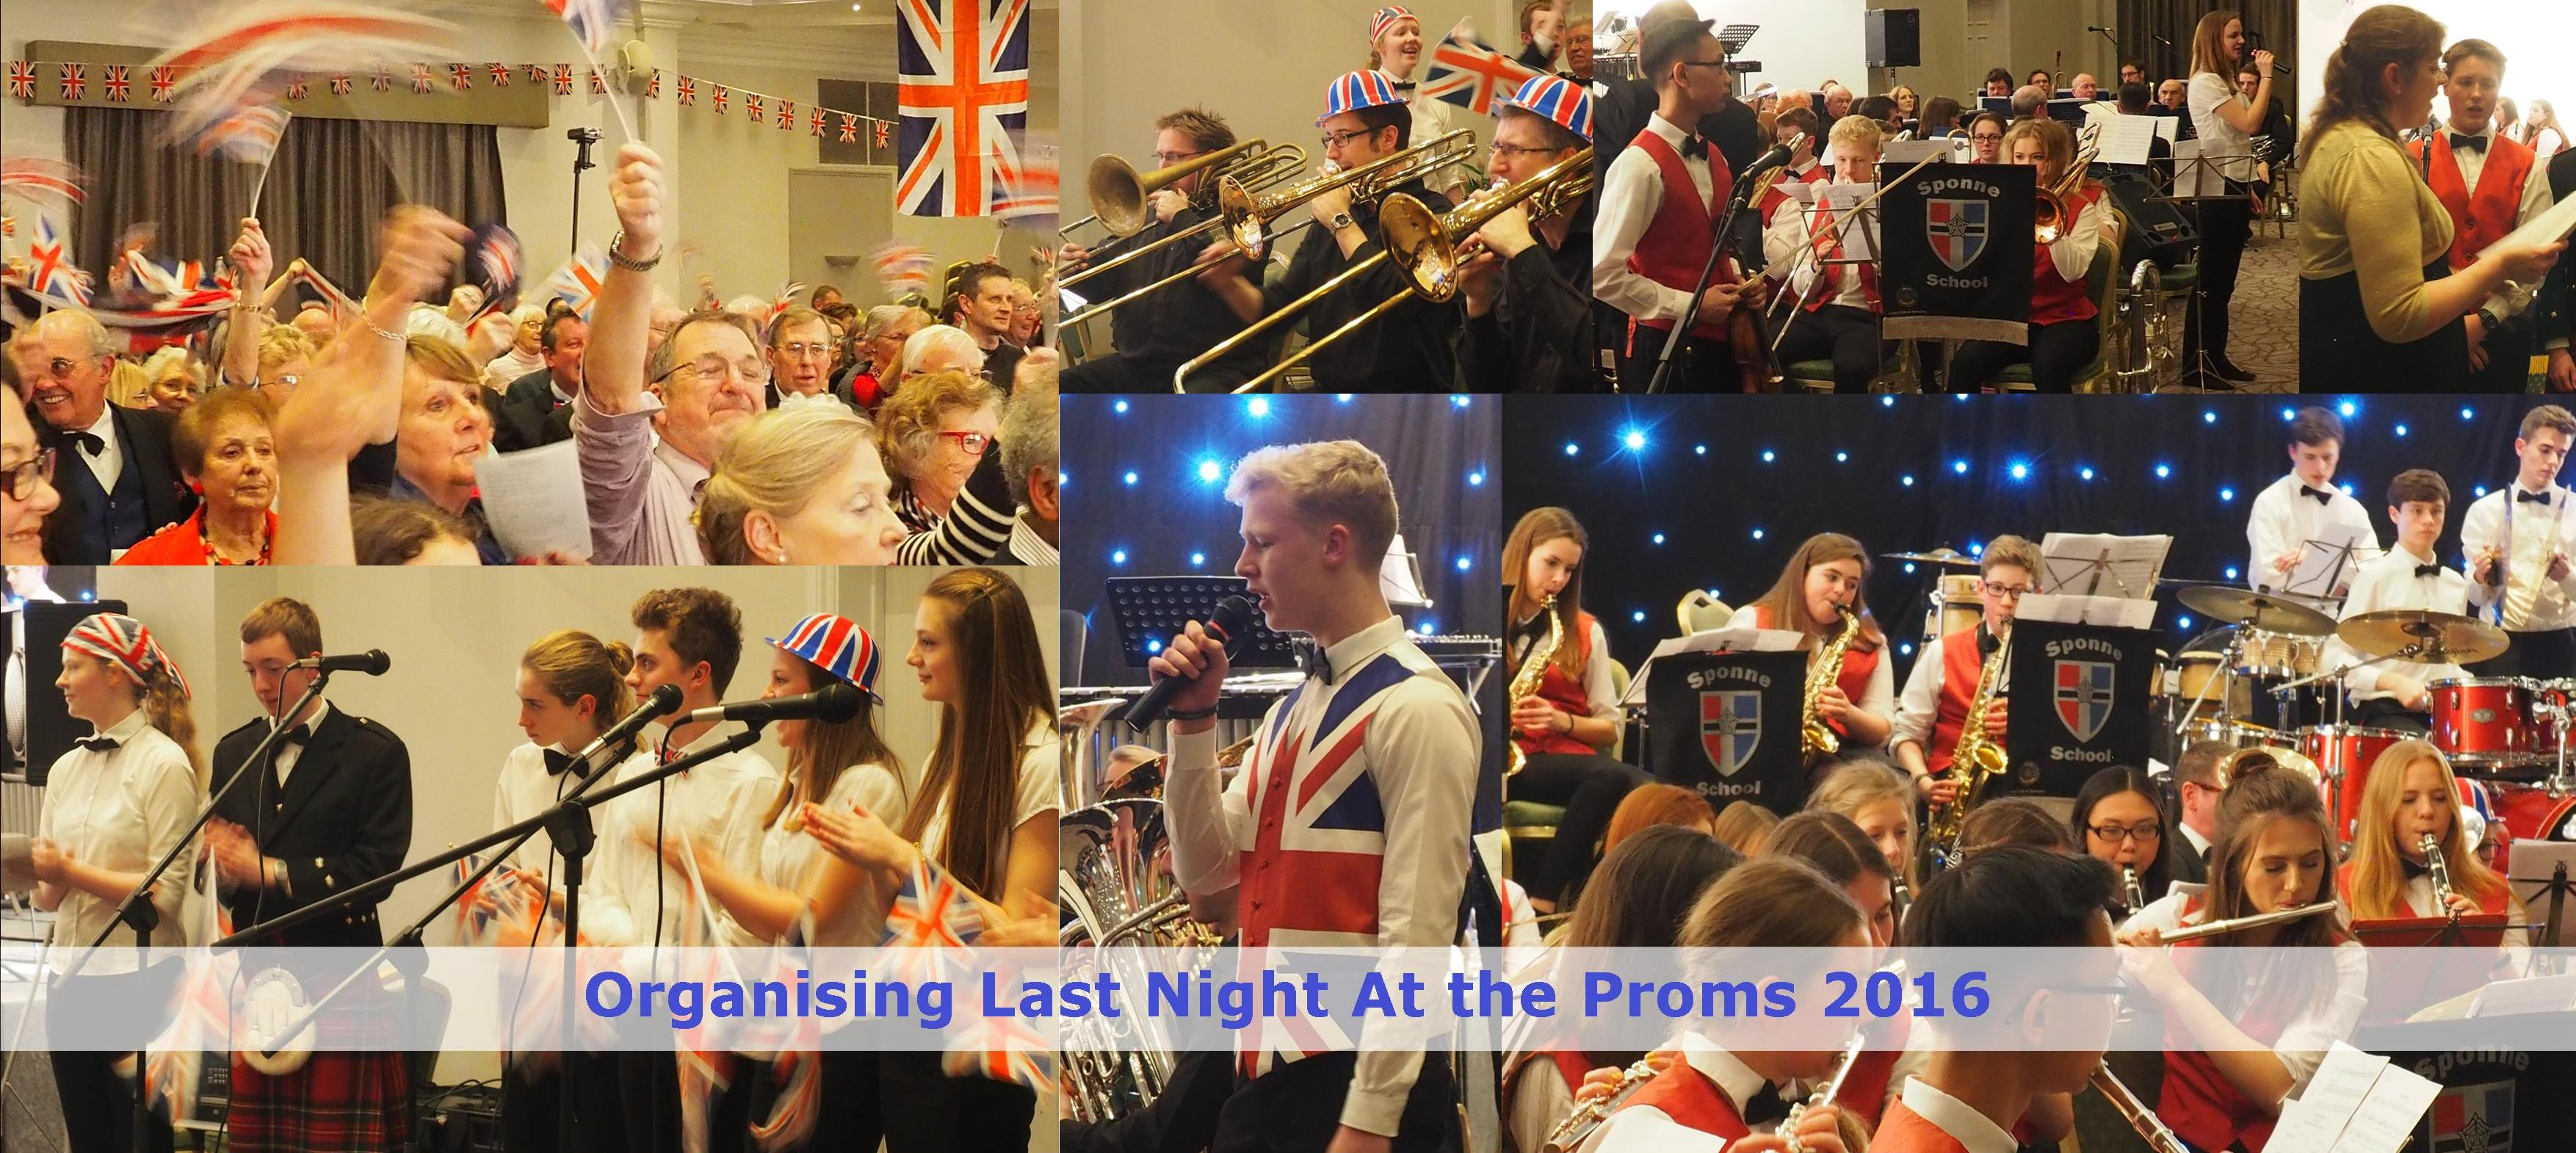 Last night at the proms 2016